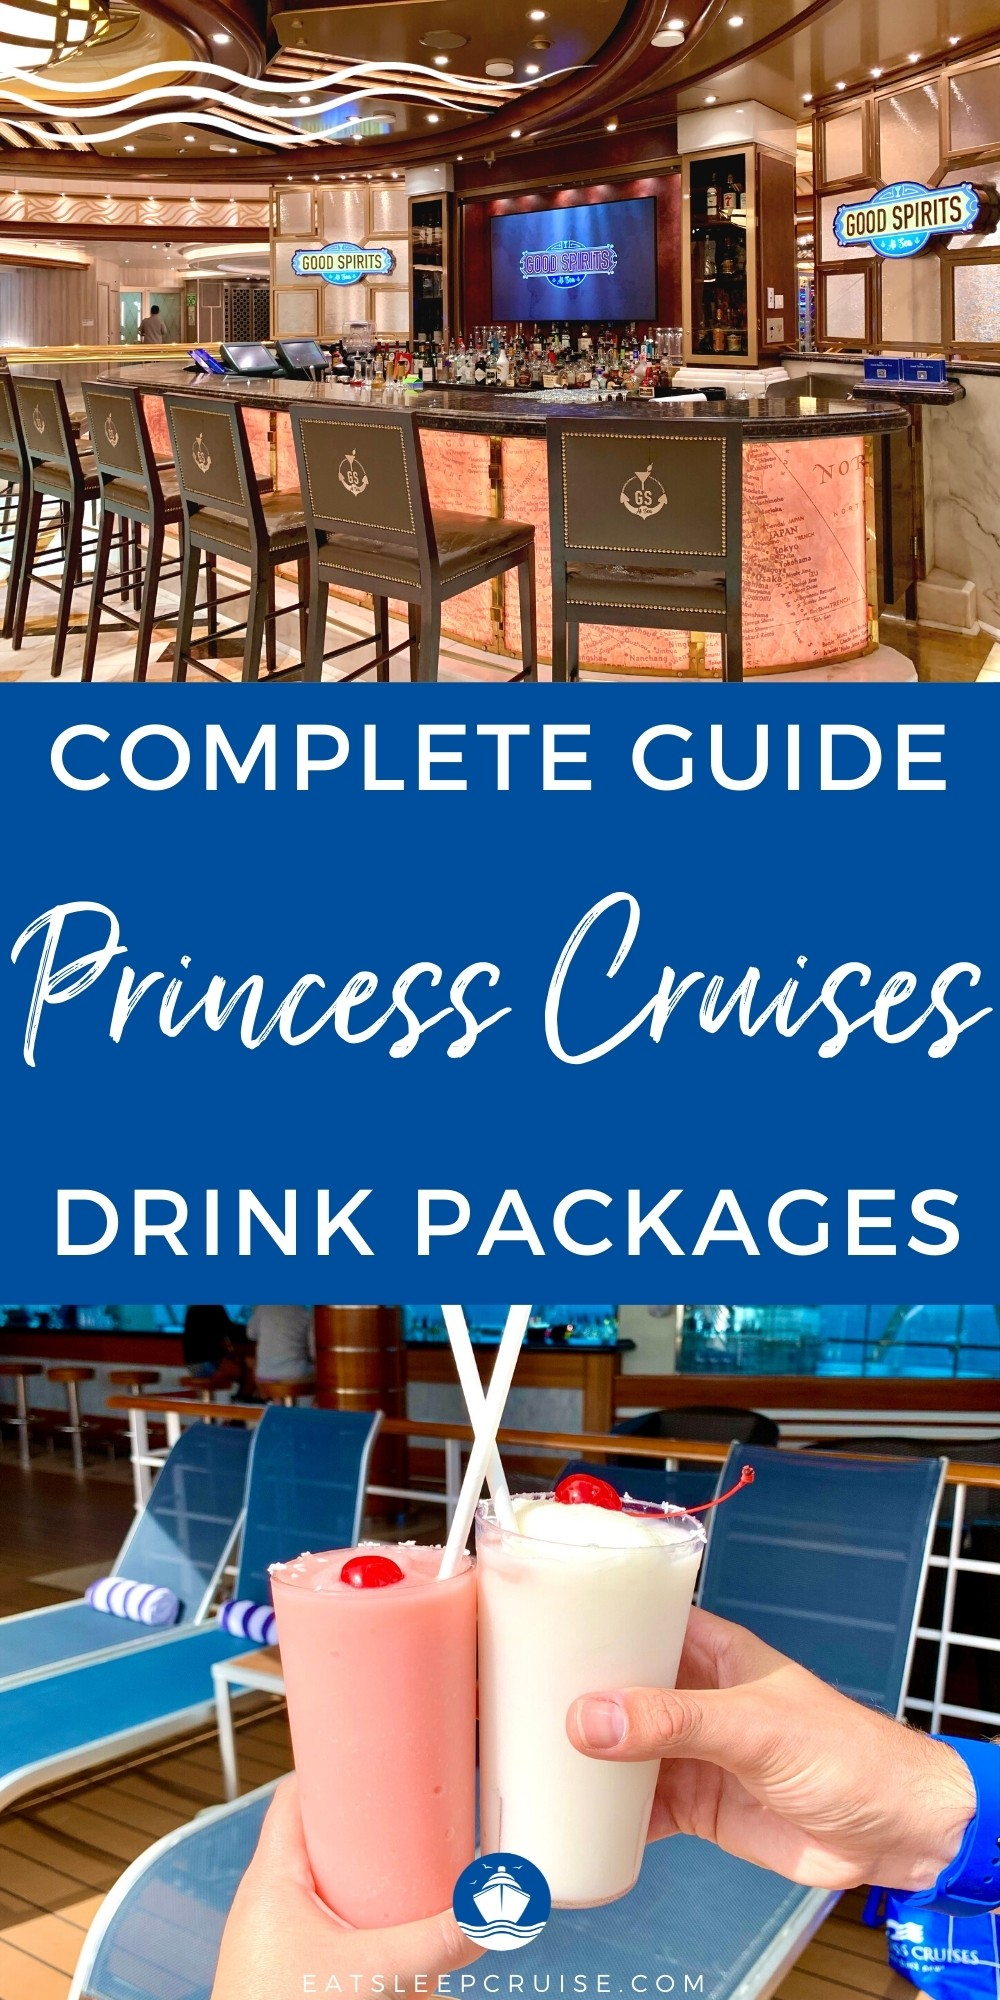 Complete Guide to Princess Cruises Drink Packages